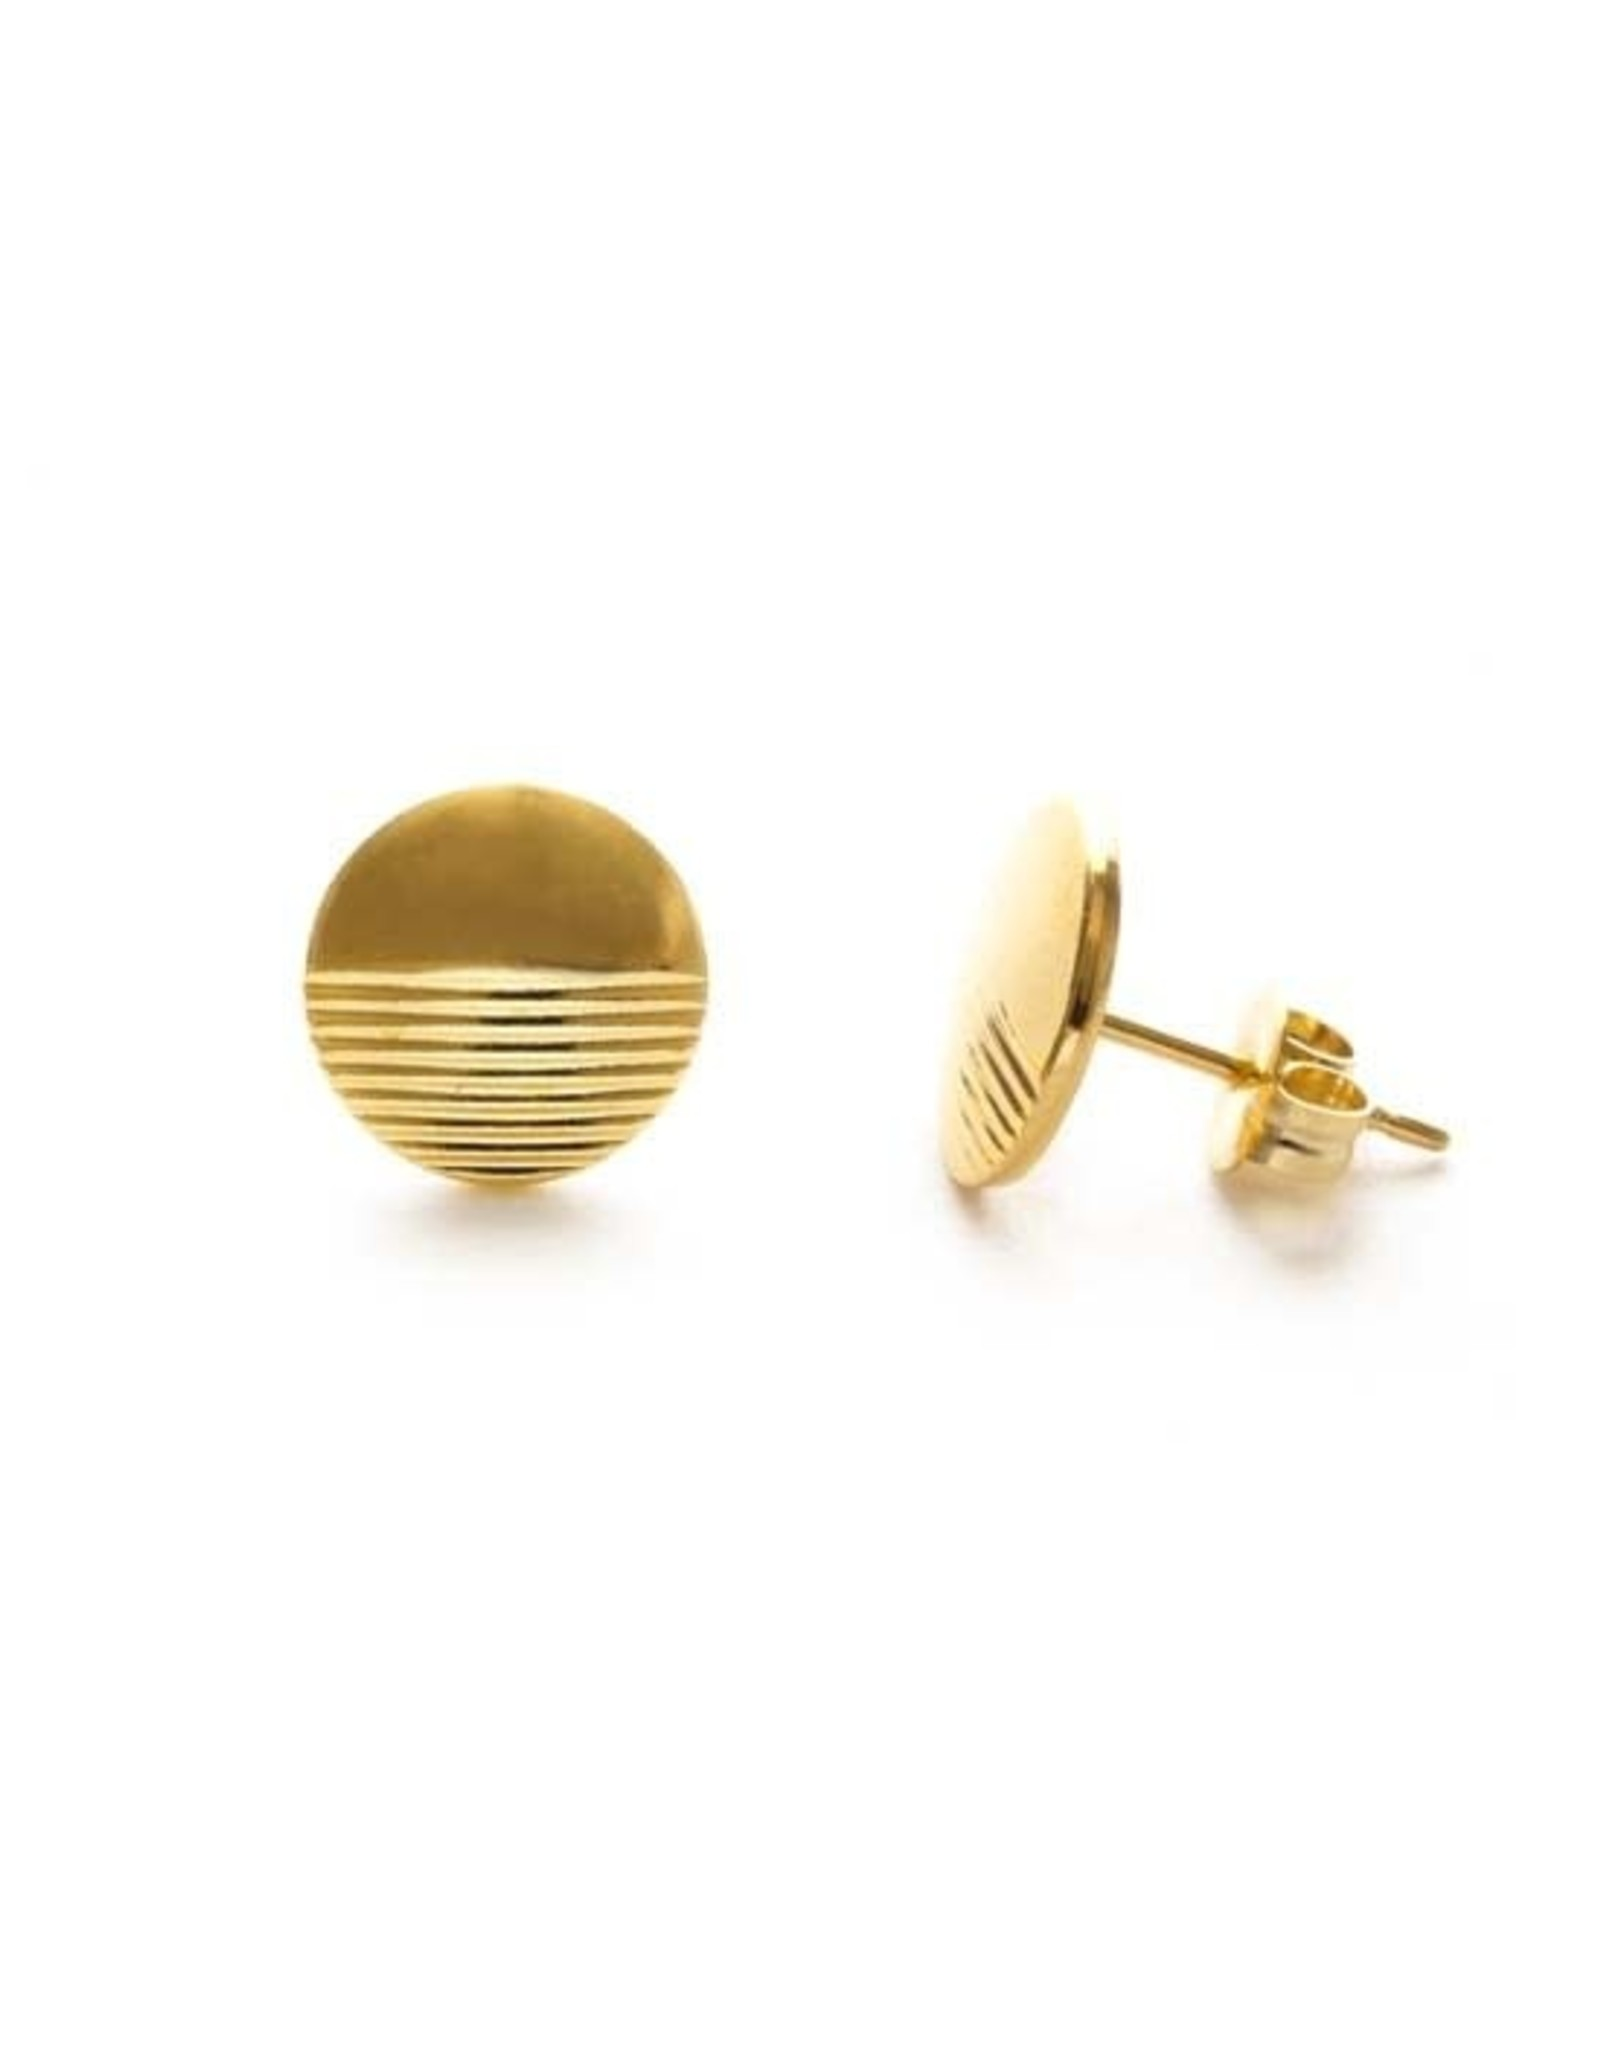 AMANO studio Circle Stud, 24k gold plated